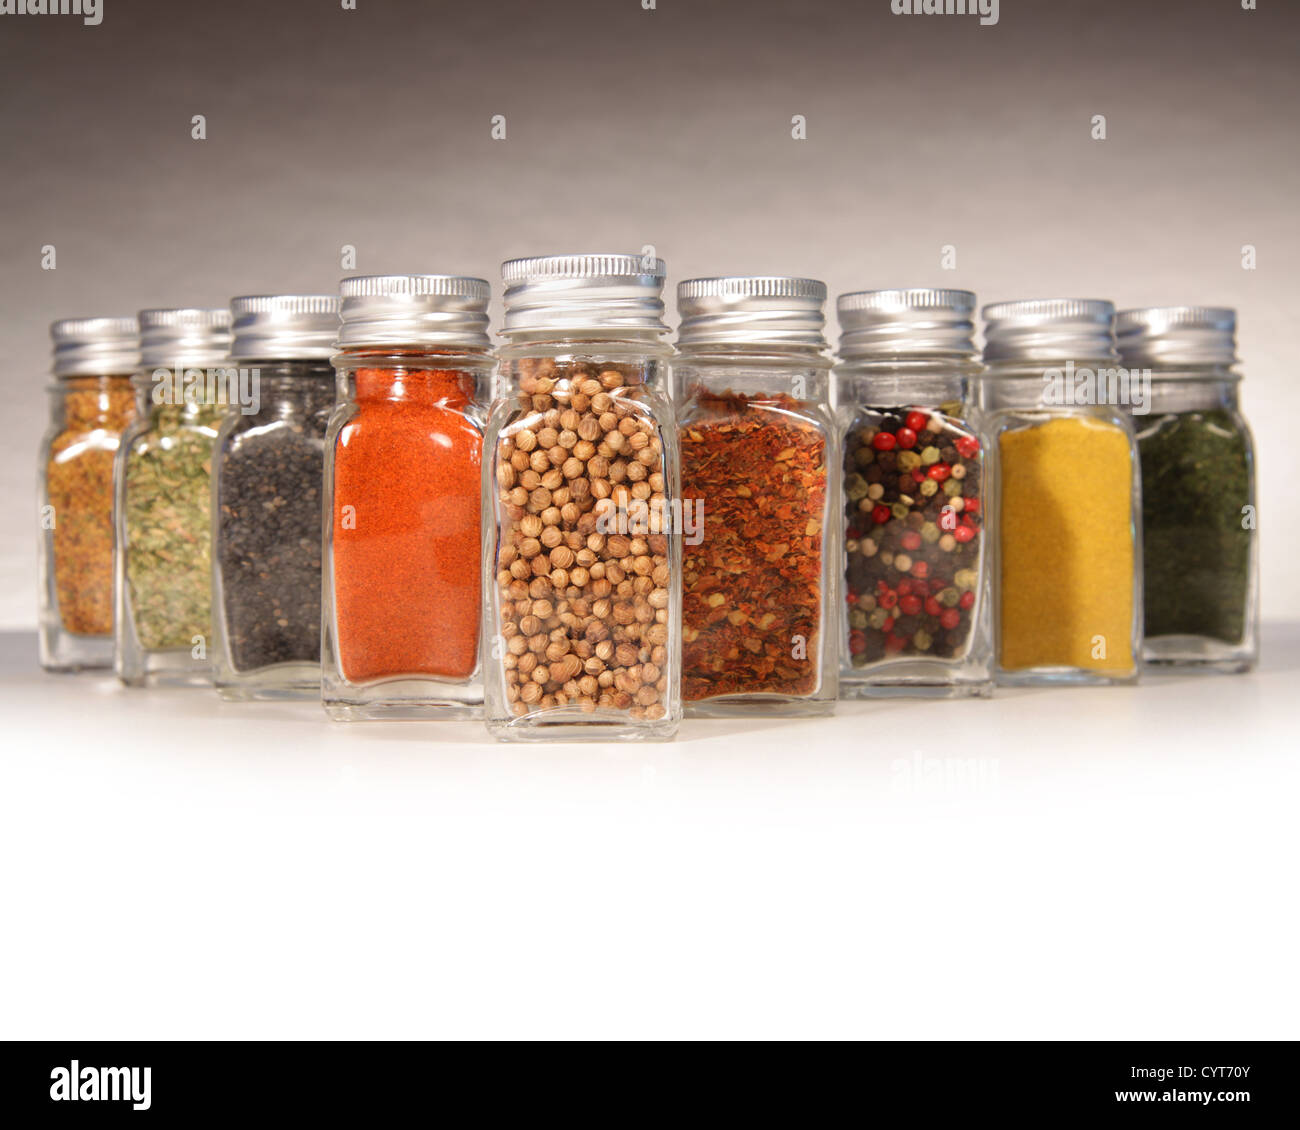 Bottles of colorful spices with grey background - Stock Image